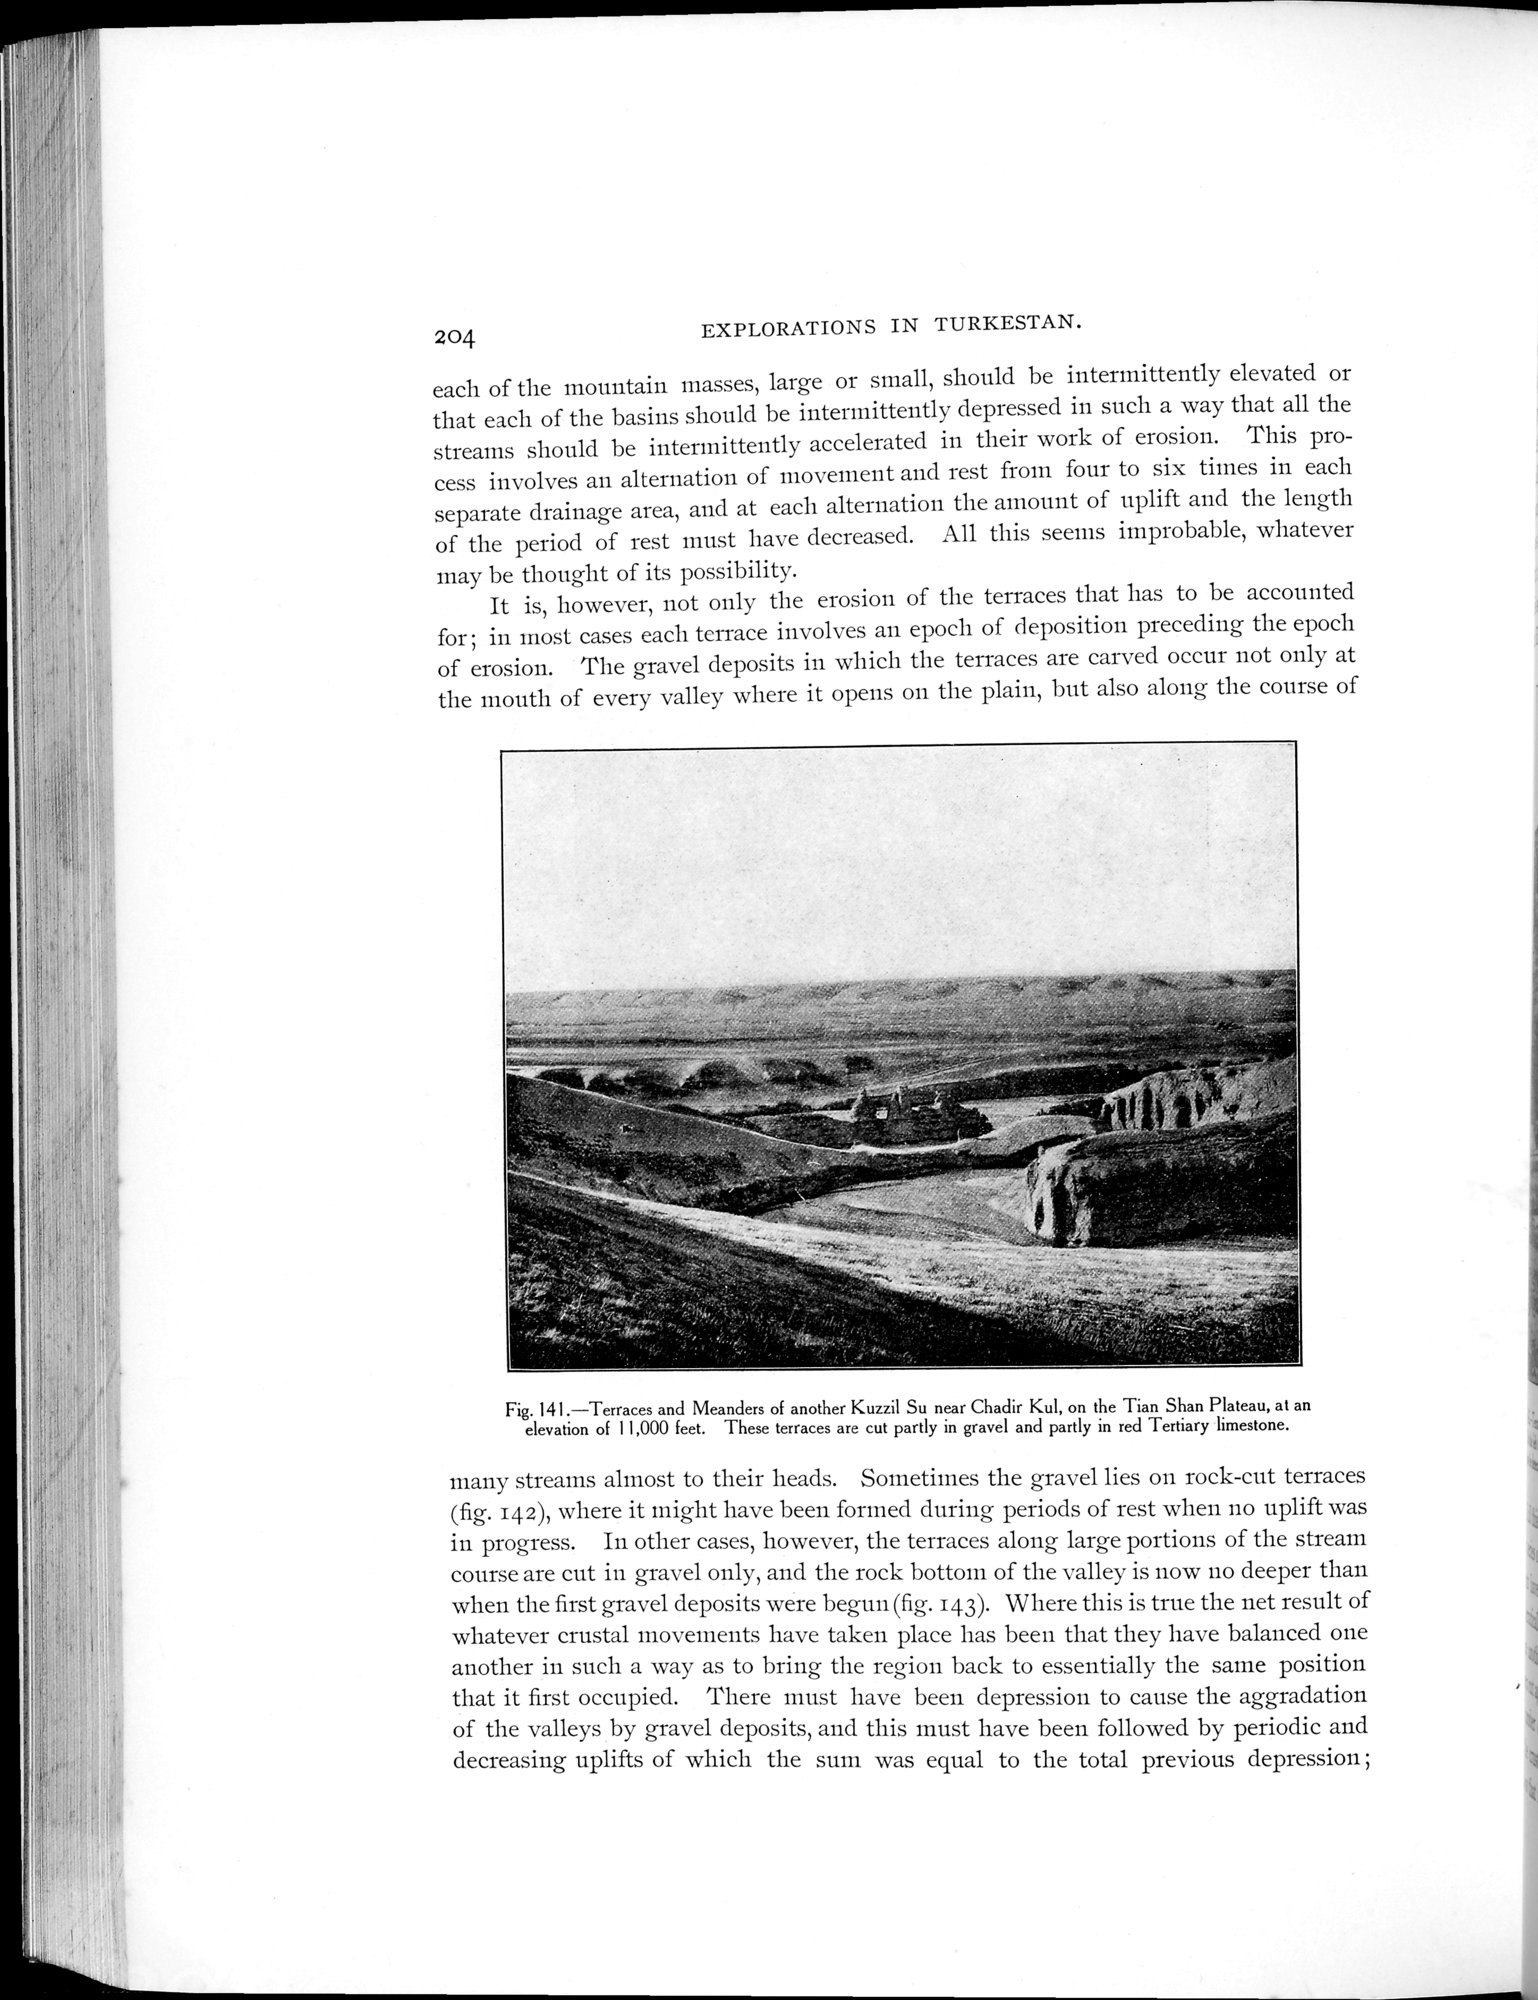 Explorations in Turkestan 1903 : vol.1 / Page 234 (Grayscale High Resolution Image)